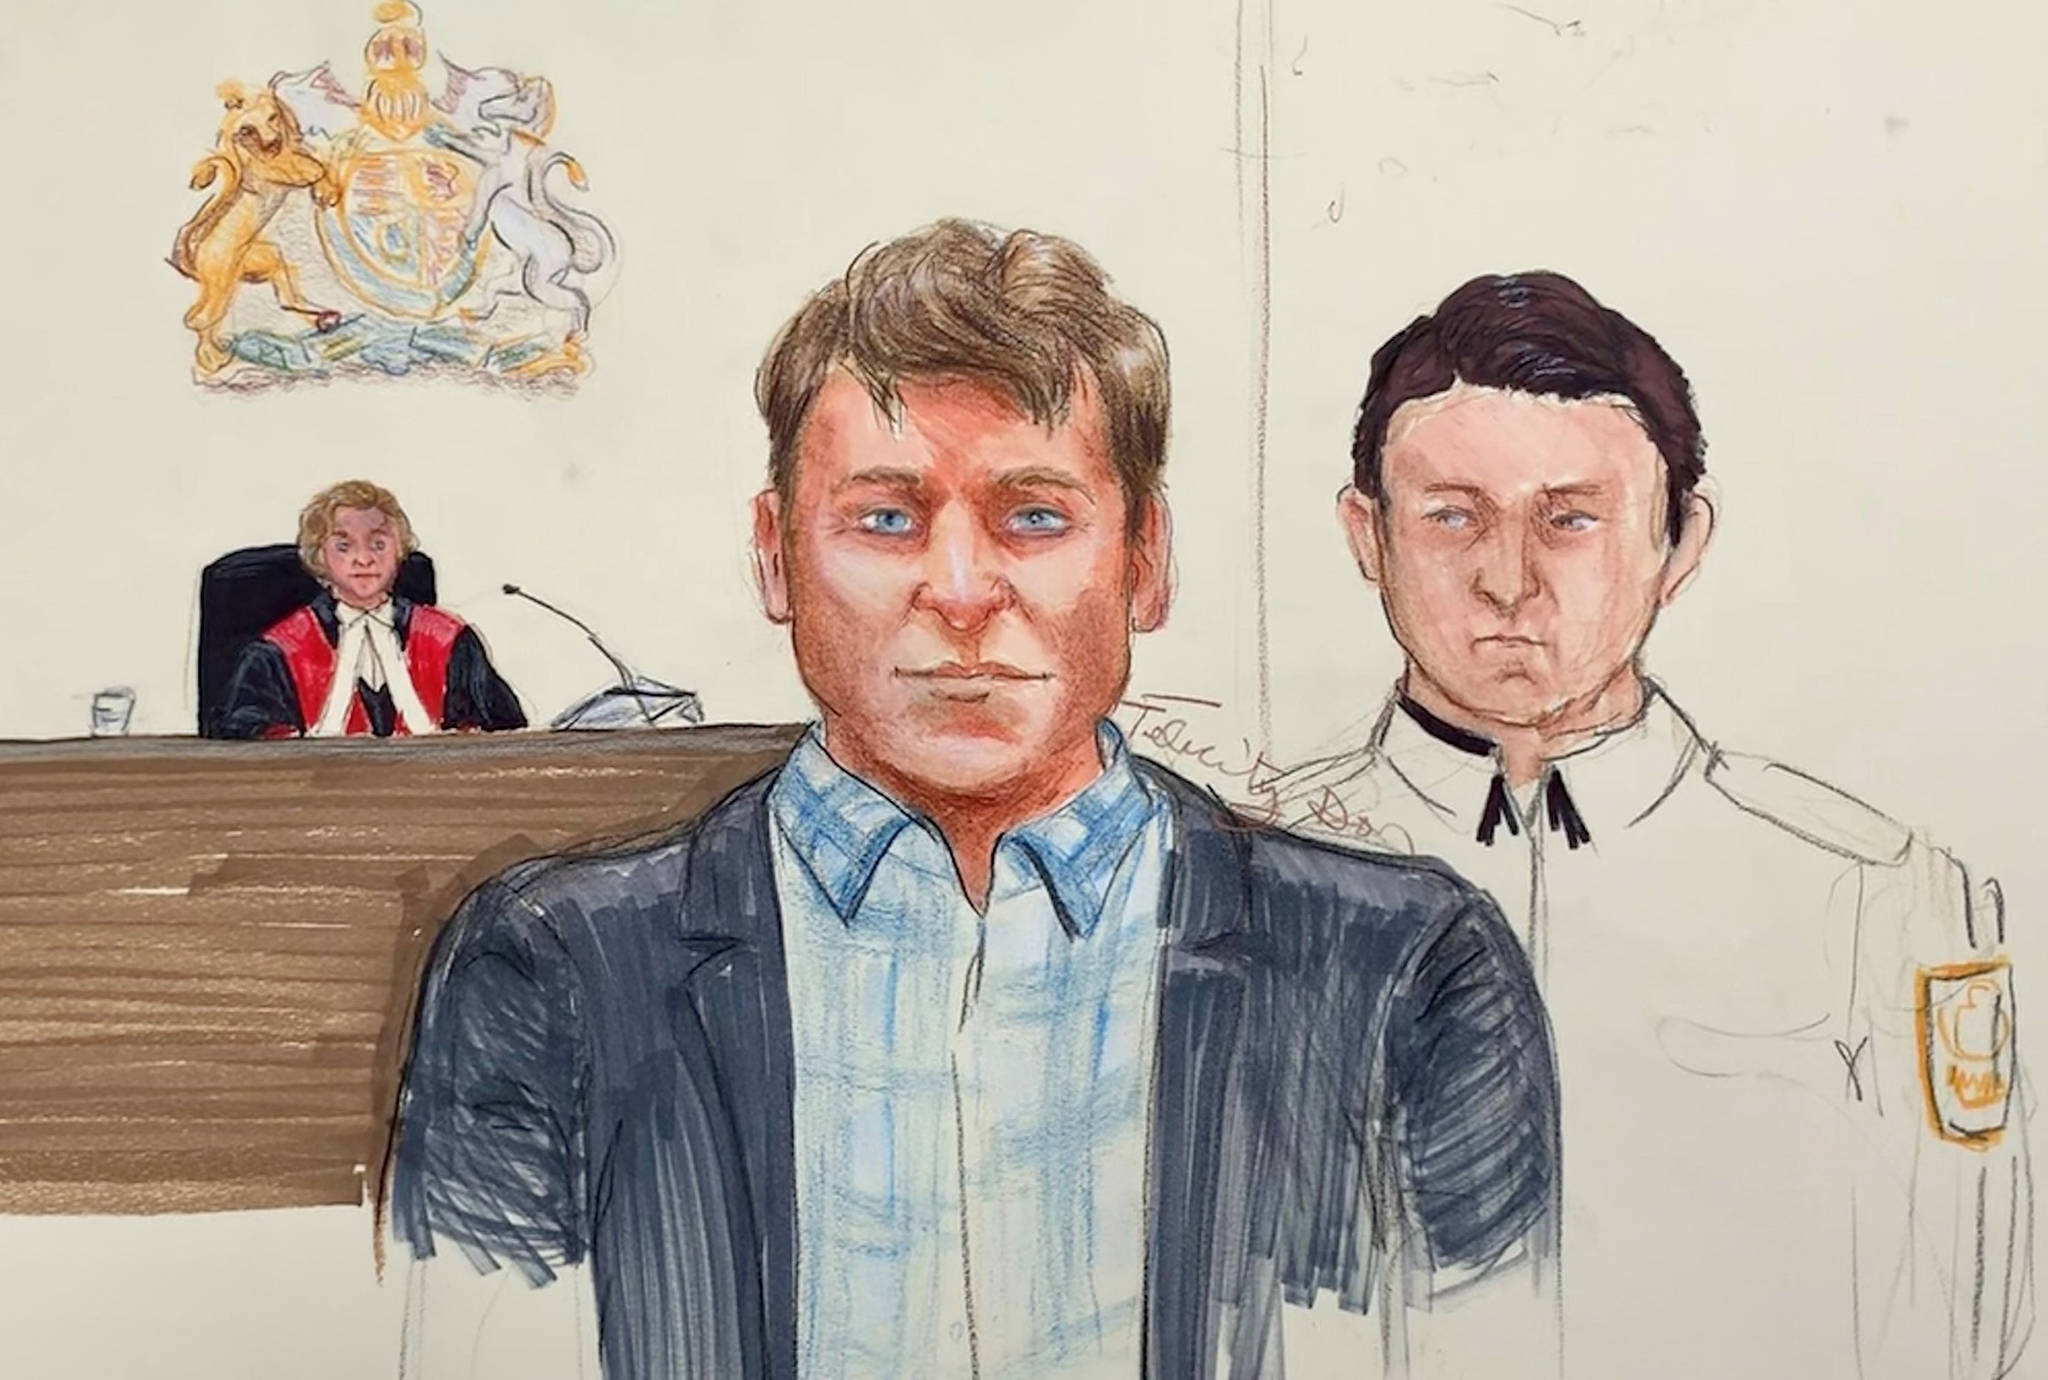 Andrew Berry, centre, appears in B.C. Supreme Court in Vancouver on Tuesday, April 16, 2019. A Crown lawyer says a Vancouver Island father stabbed his young daughters dozens of times before attempting to kill himself on Christmas Day in 2017. Clare Jennings delivered her opening statement to a B.C. Supreme Court jury in Vancouver at the start of the trial for Andrew Berry, who has pleaded not guilty to two counts of second-degree murder. THE CANADIAN PRESS/Felicity Don